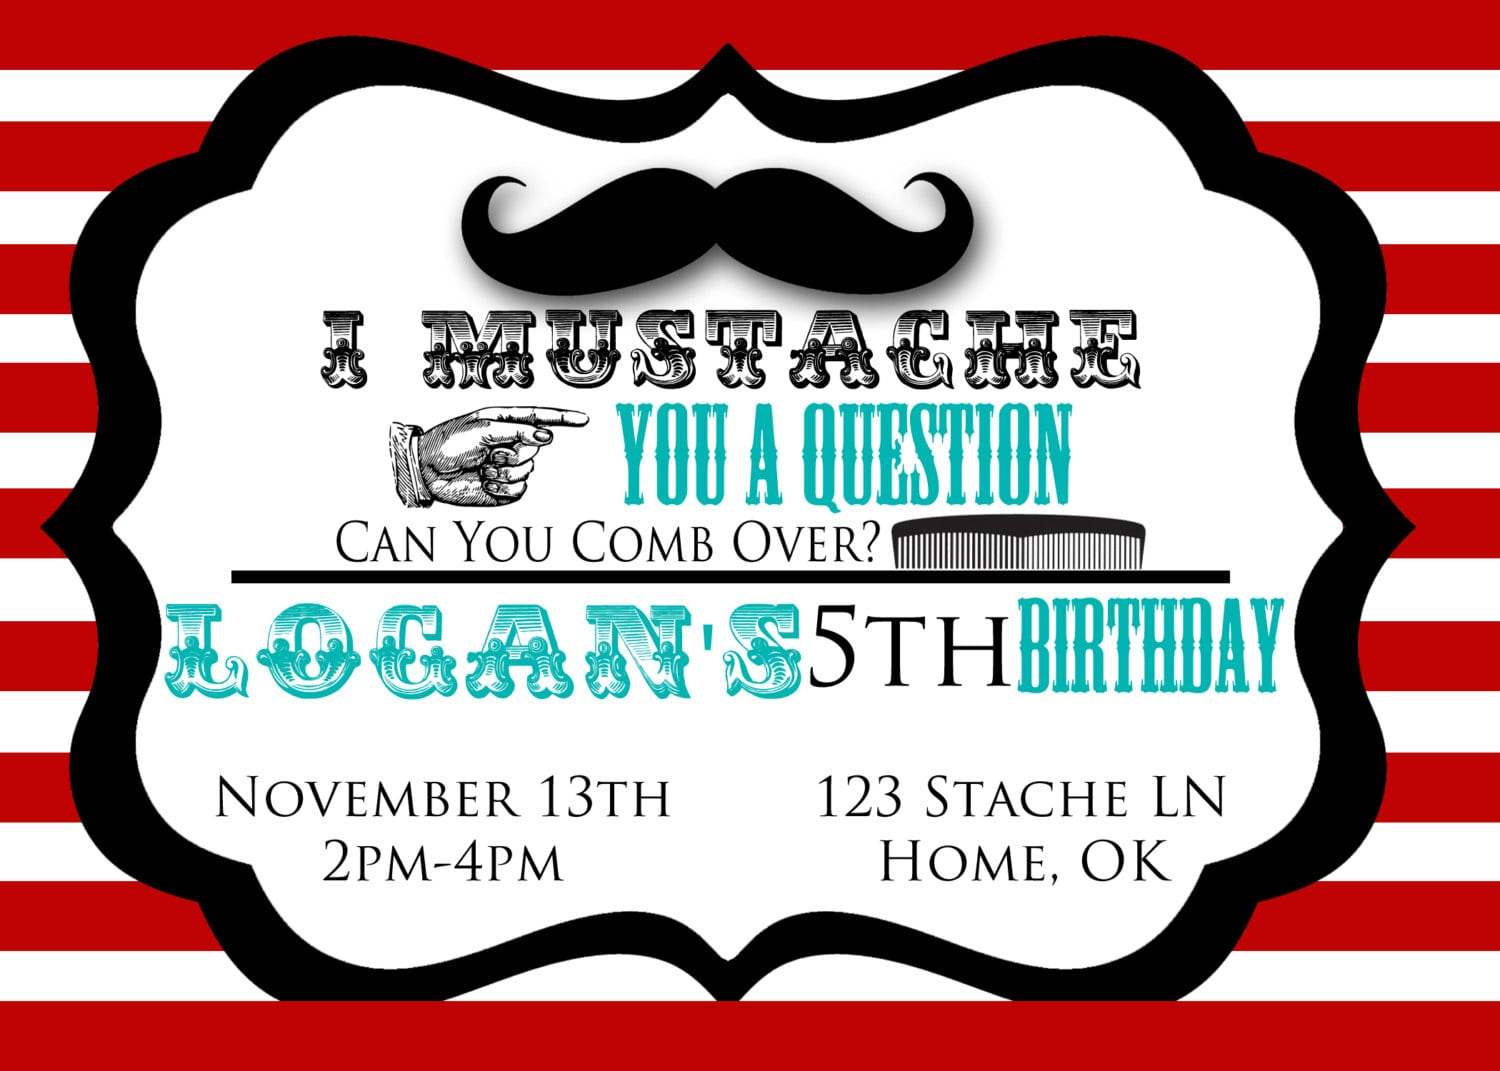 Mustache Party Invitations Mustache Party Invitations With Some